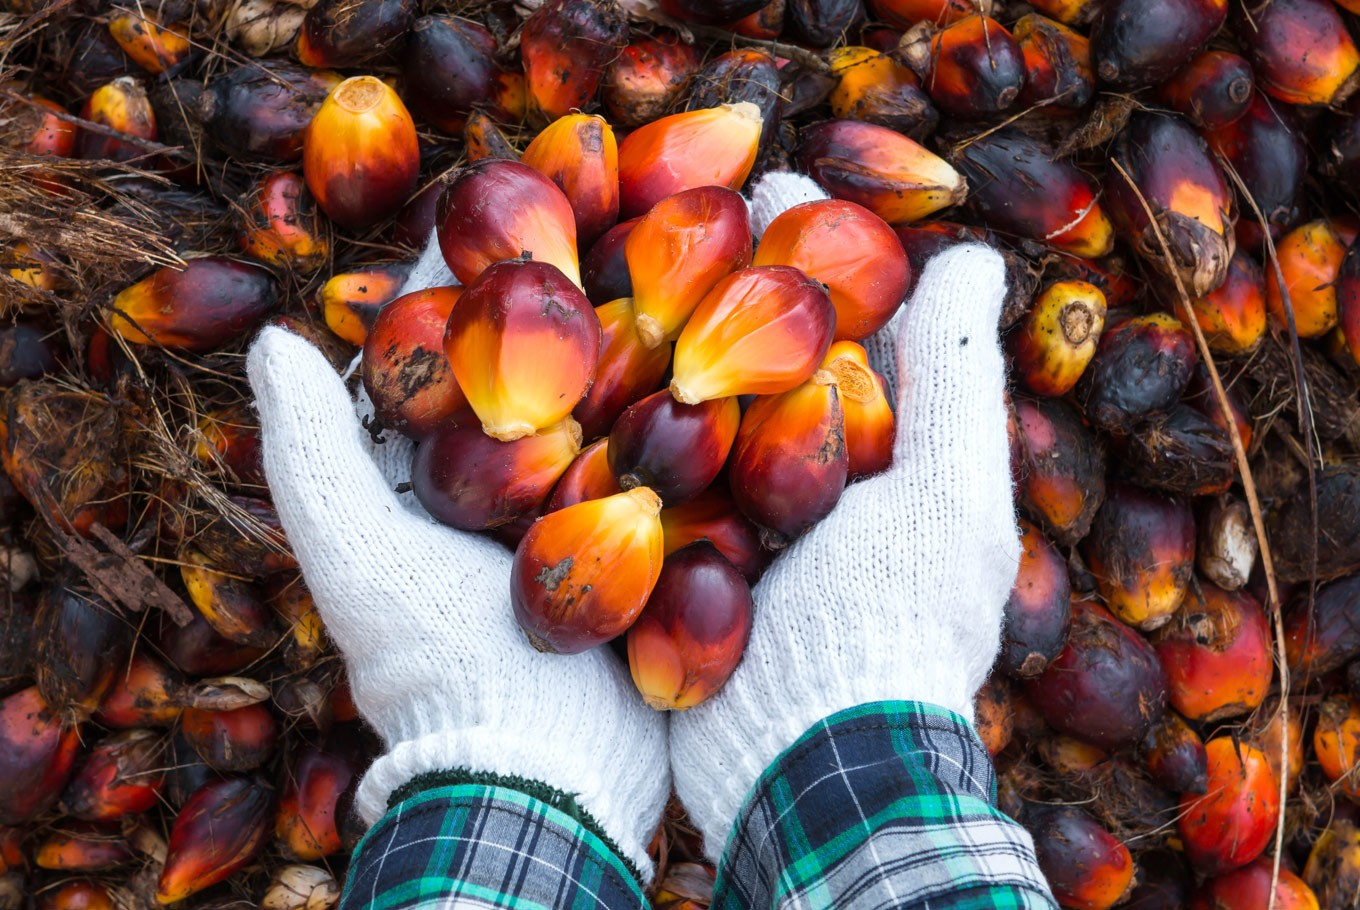 Malaysia plans to halt palm oil expansion to avoid bad image